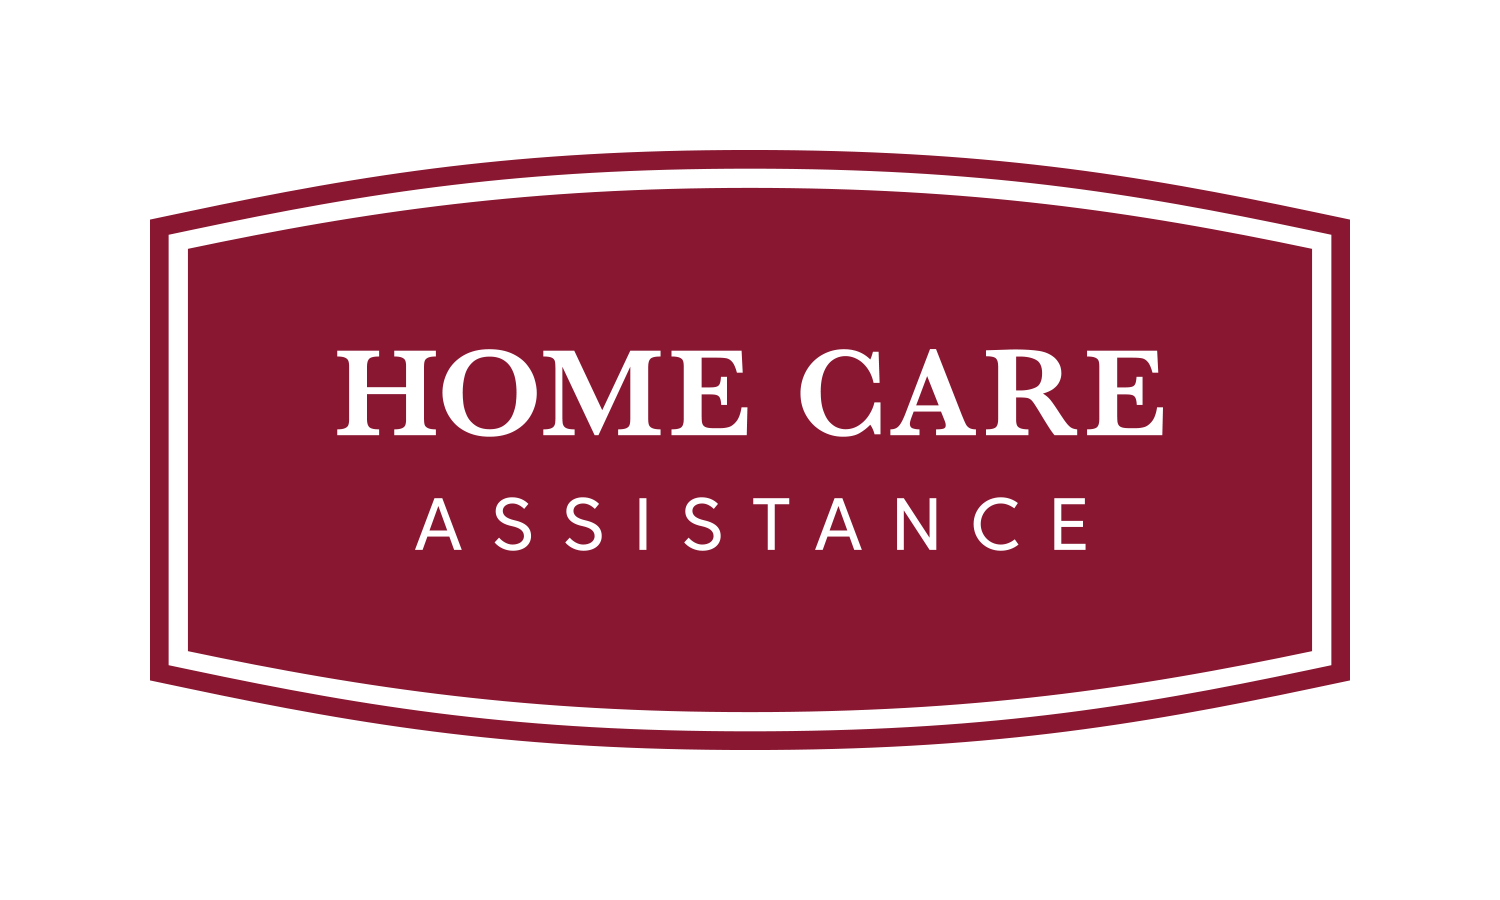 Home Care Assistance in Alrington, TX